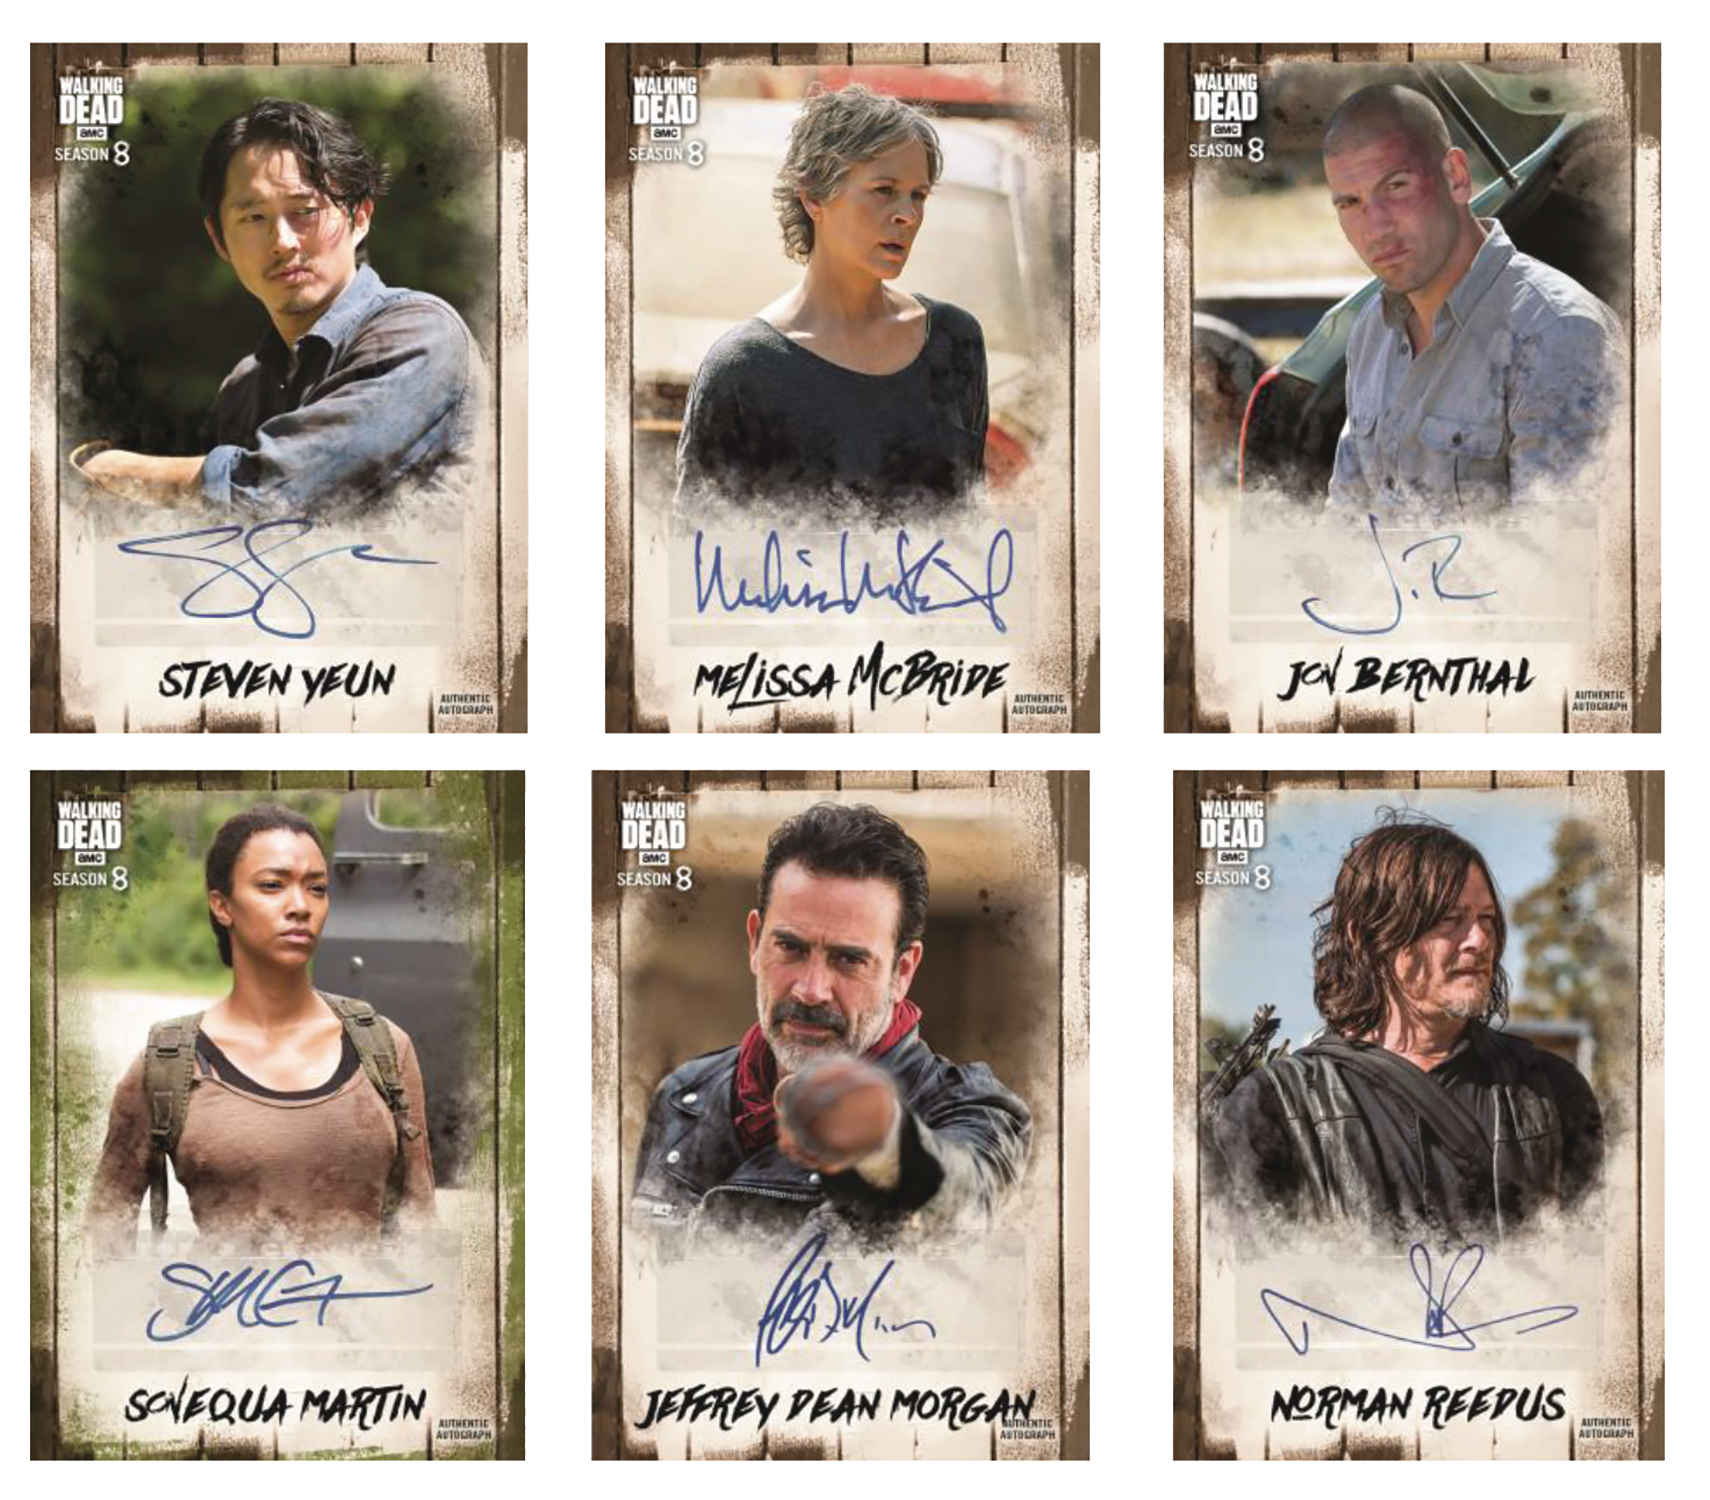 TOPPS 2018 WALKING DEAD AUTO COLL T/C PACK (Net)